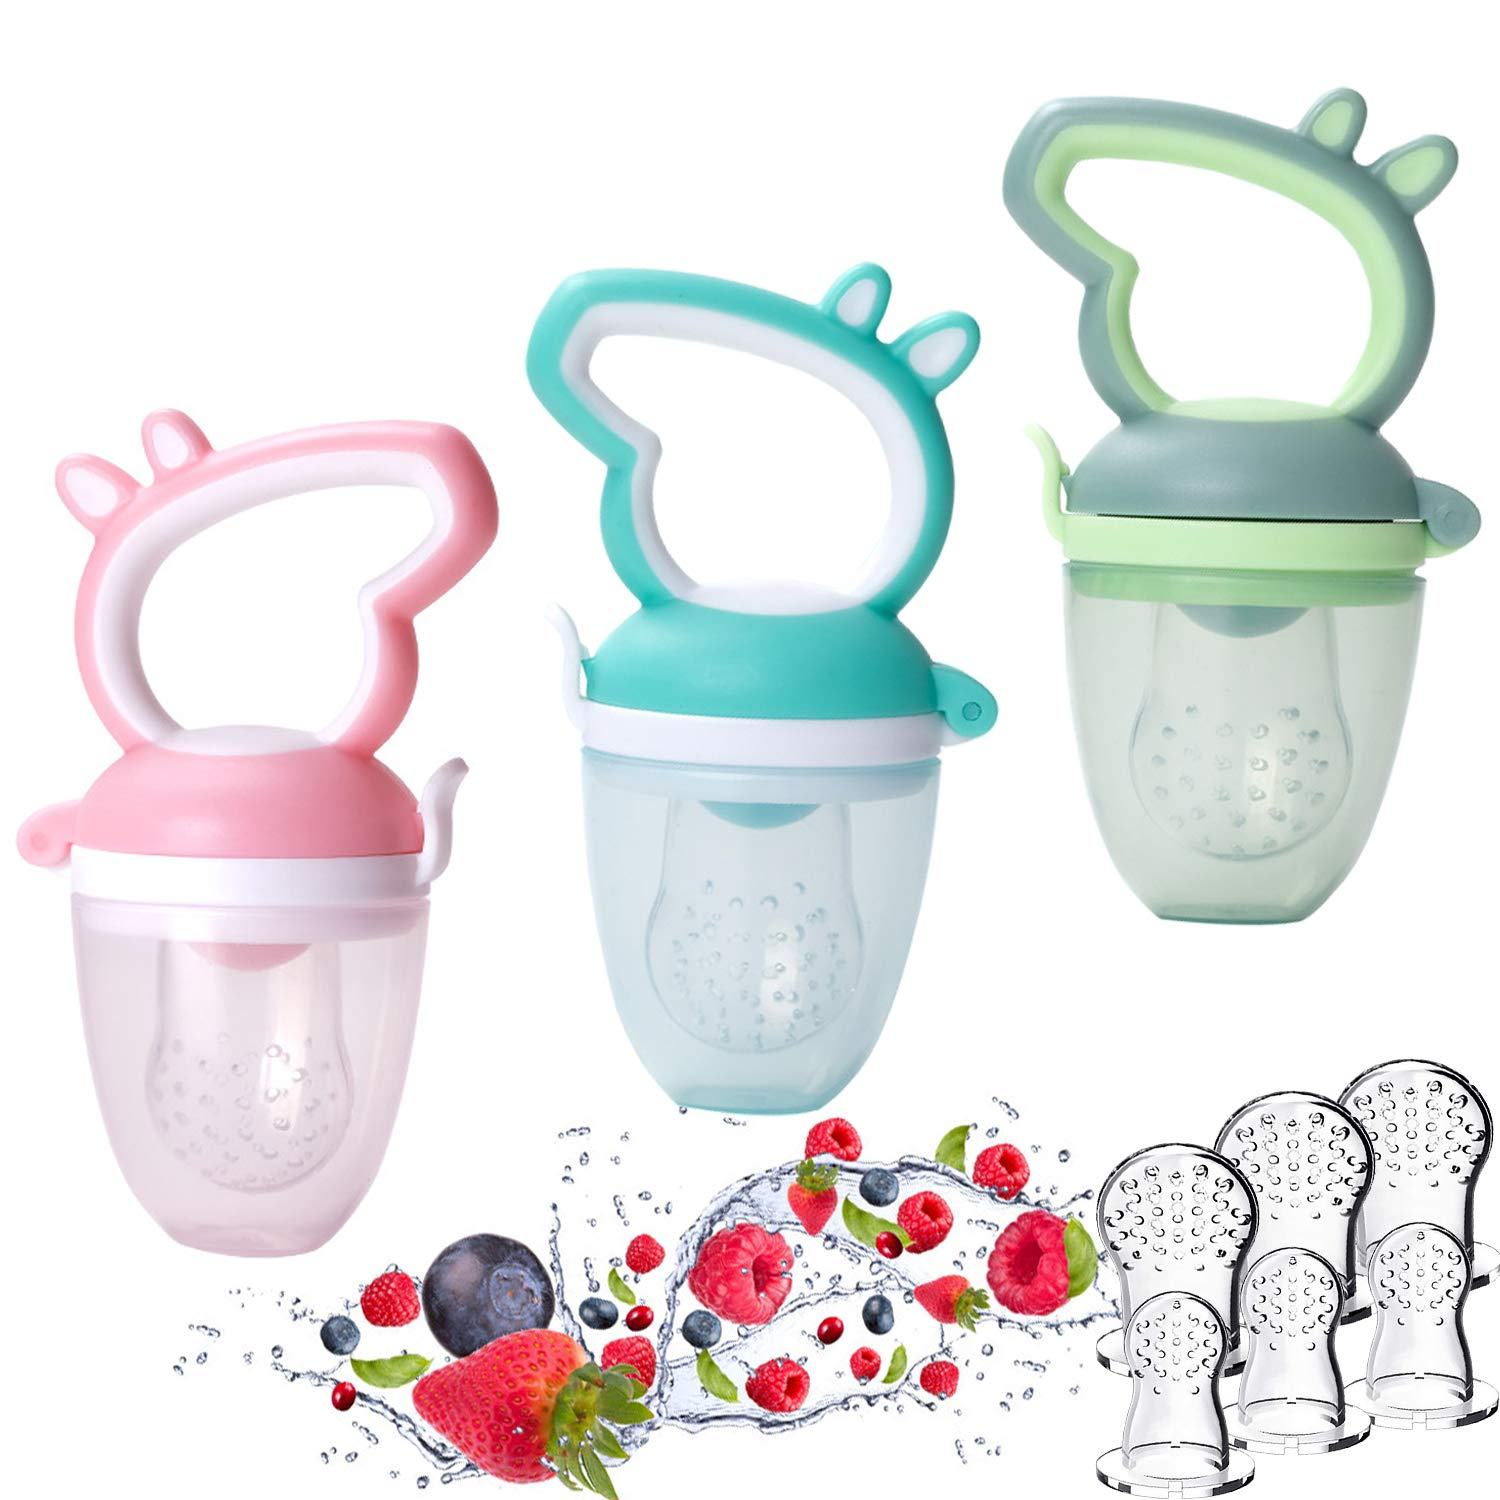 LABOTA 3 Pack Baby Food Feeder/Fruit Feeder Pacifier Infant Fresh Fruit Silicone Nipple Teething Toy Teether in Appetite Stimulating Colors, Bonus 6 Silicone Sacs